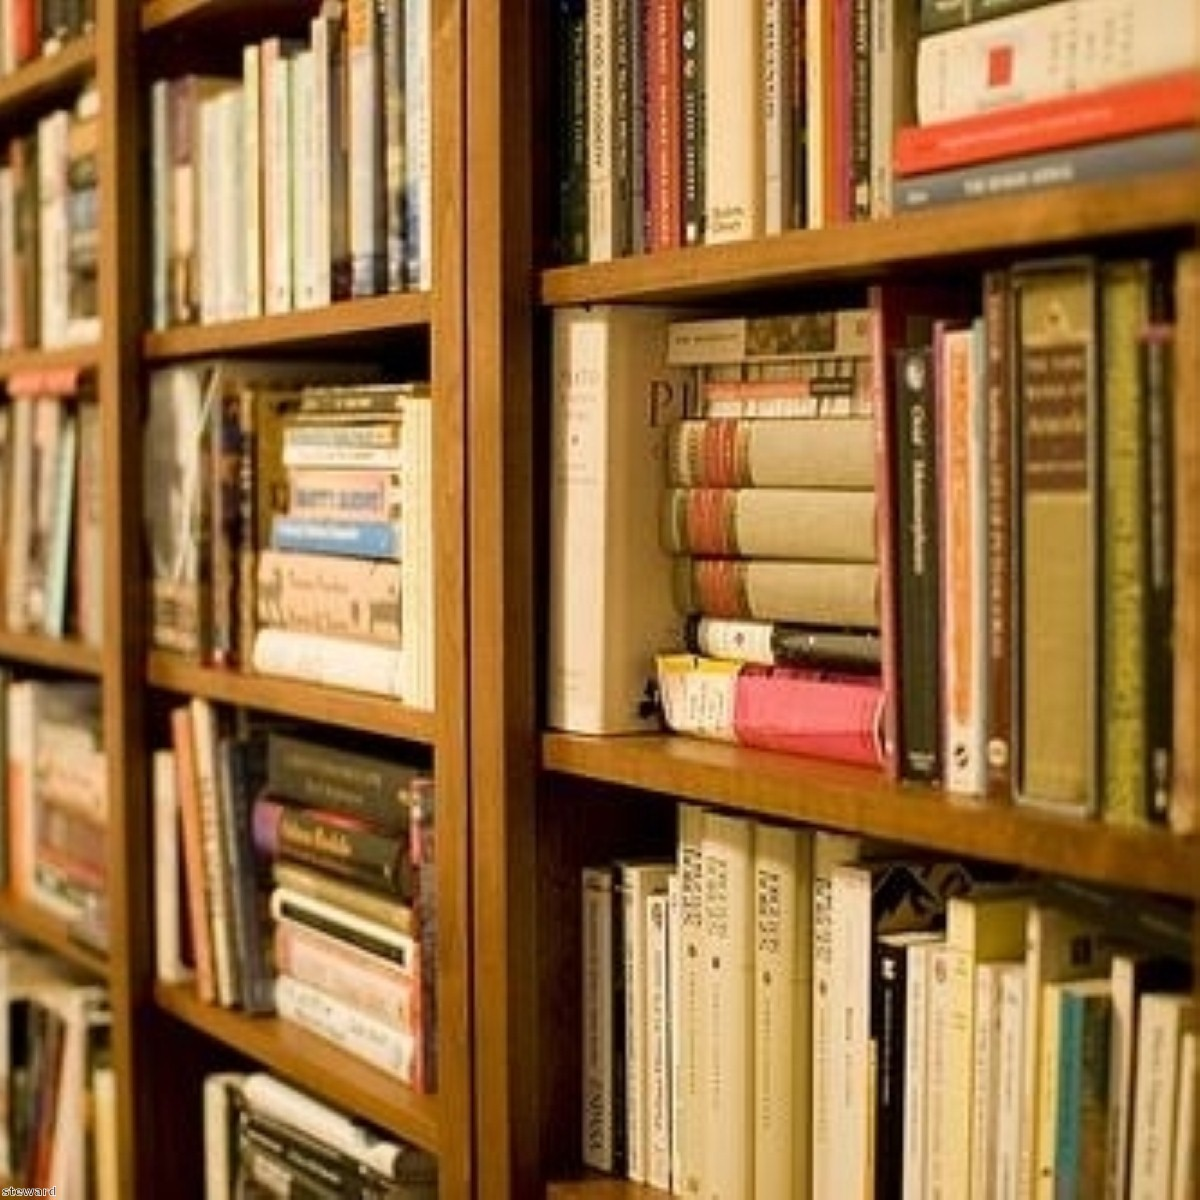 The prison book bank: A campaign started on Politics.co.uk